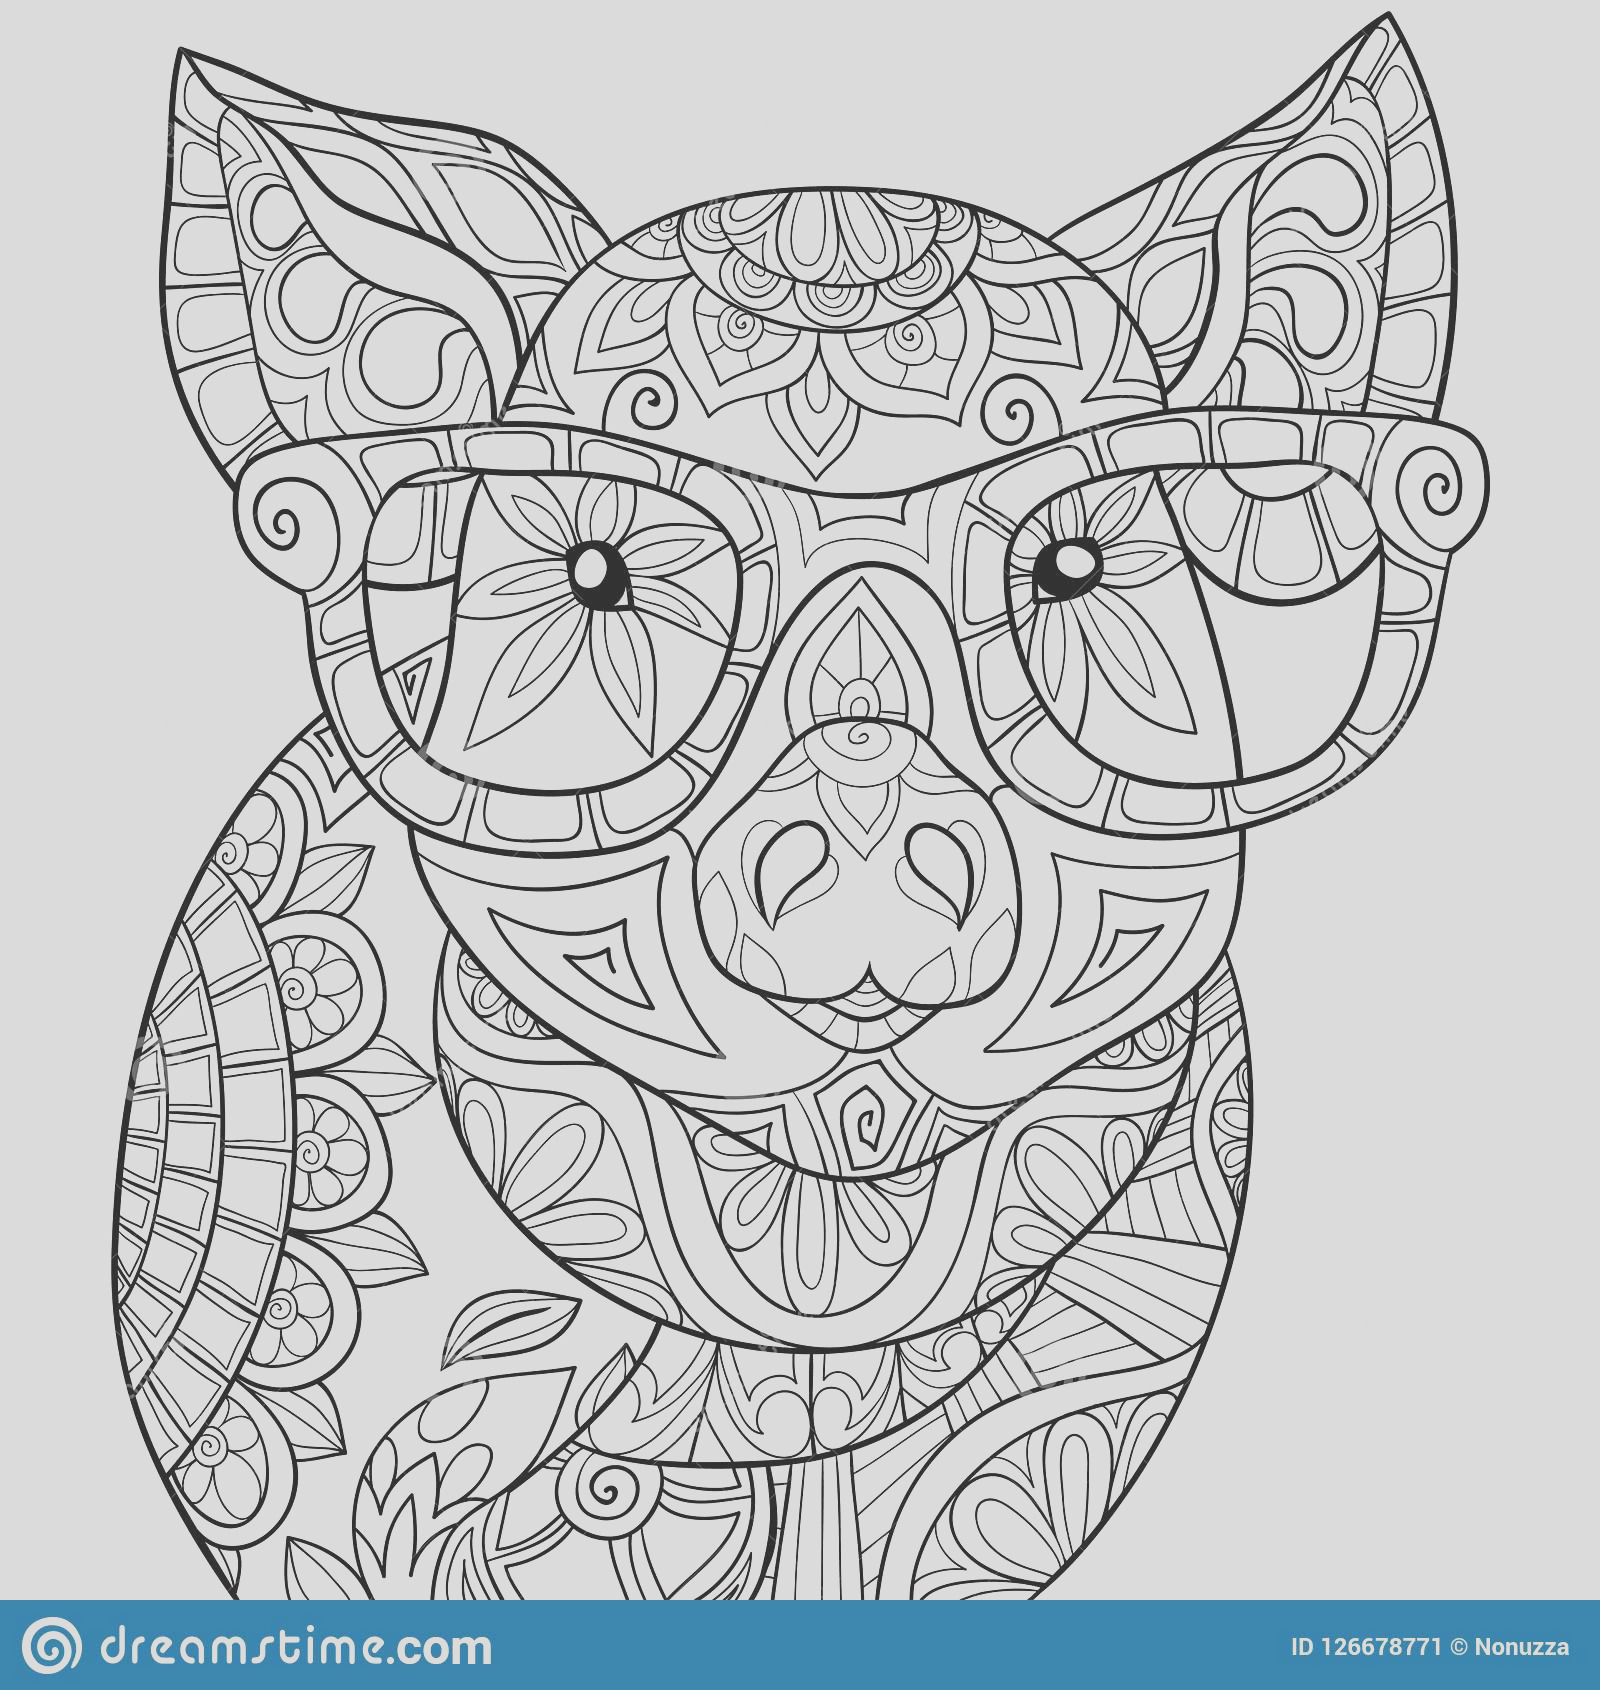 adult coloring book page cute pig image relaxing zen art style illustration cute pig wearing sunglasses zen tangle image